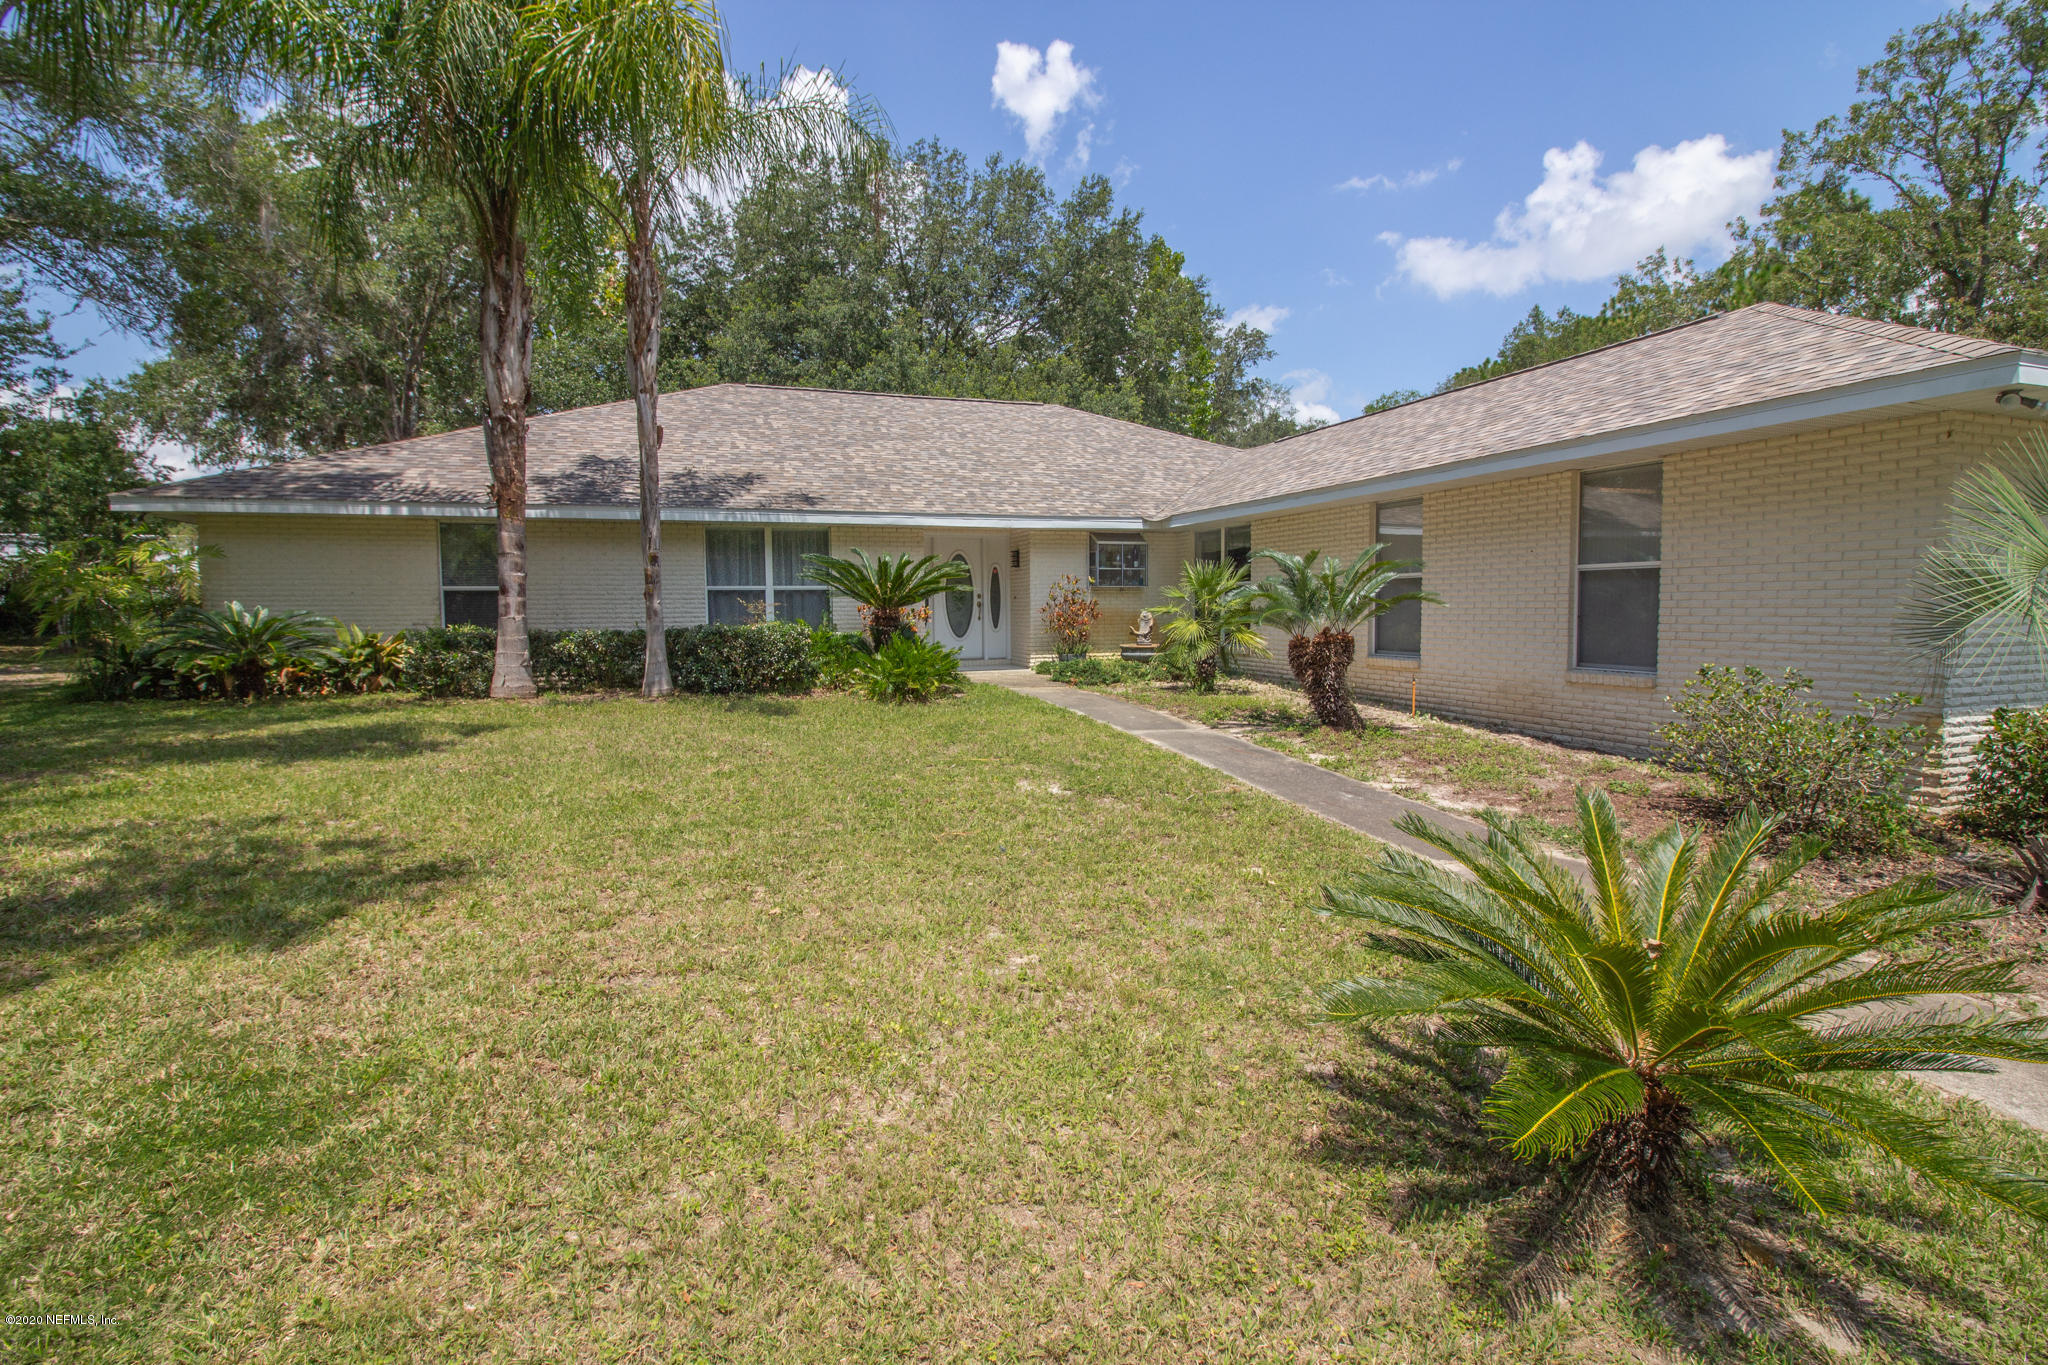 3308 STATE RD 21, KEYSTONE HEIGHTS, FLORIDA 32656, 3 Bedrooms Bedrooms, ,Residential,For sale,STATE RD 21,1064652